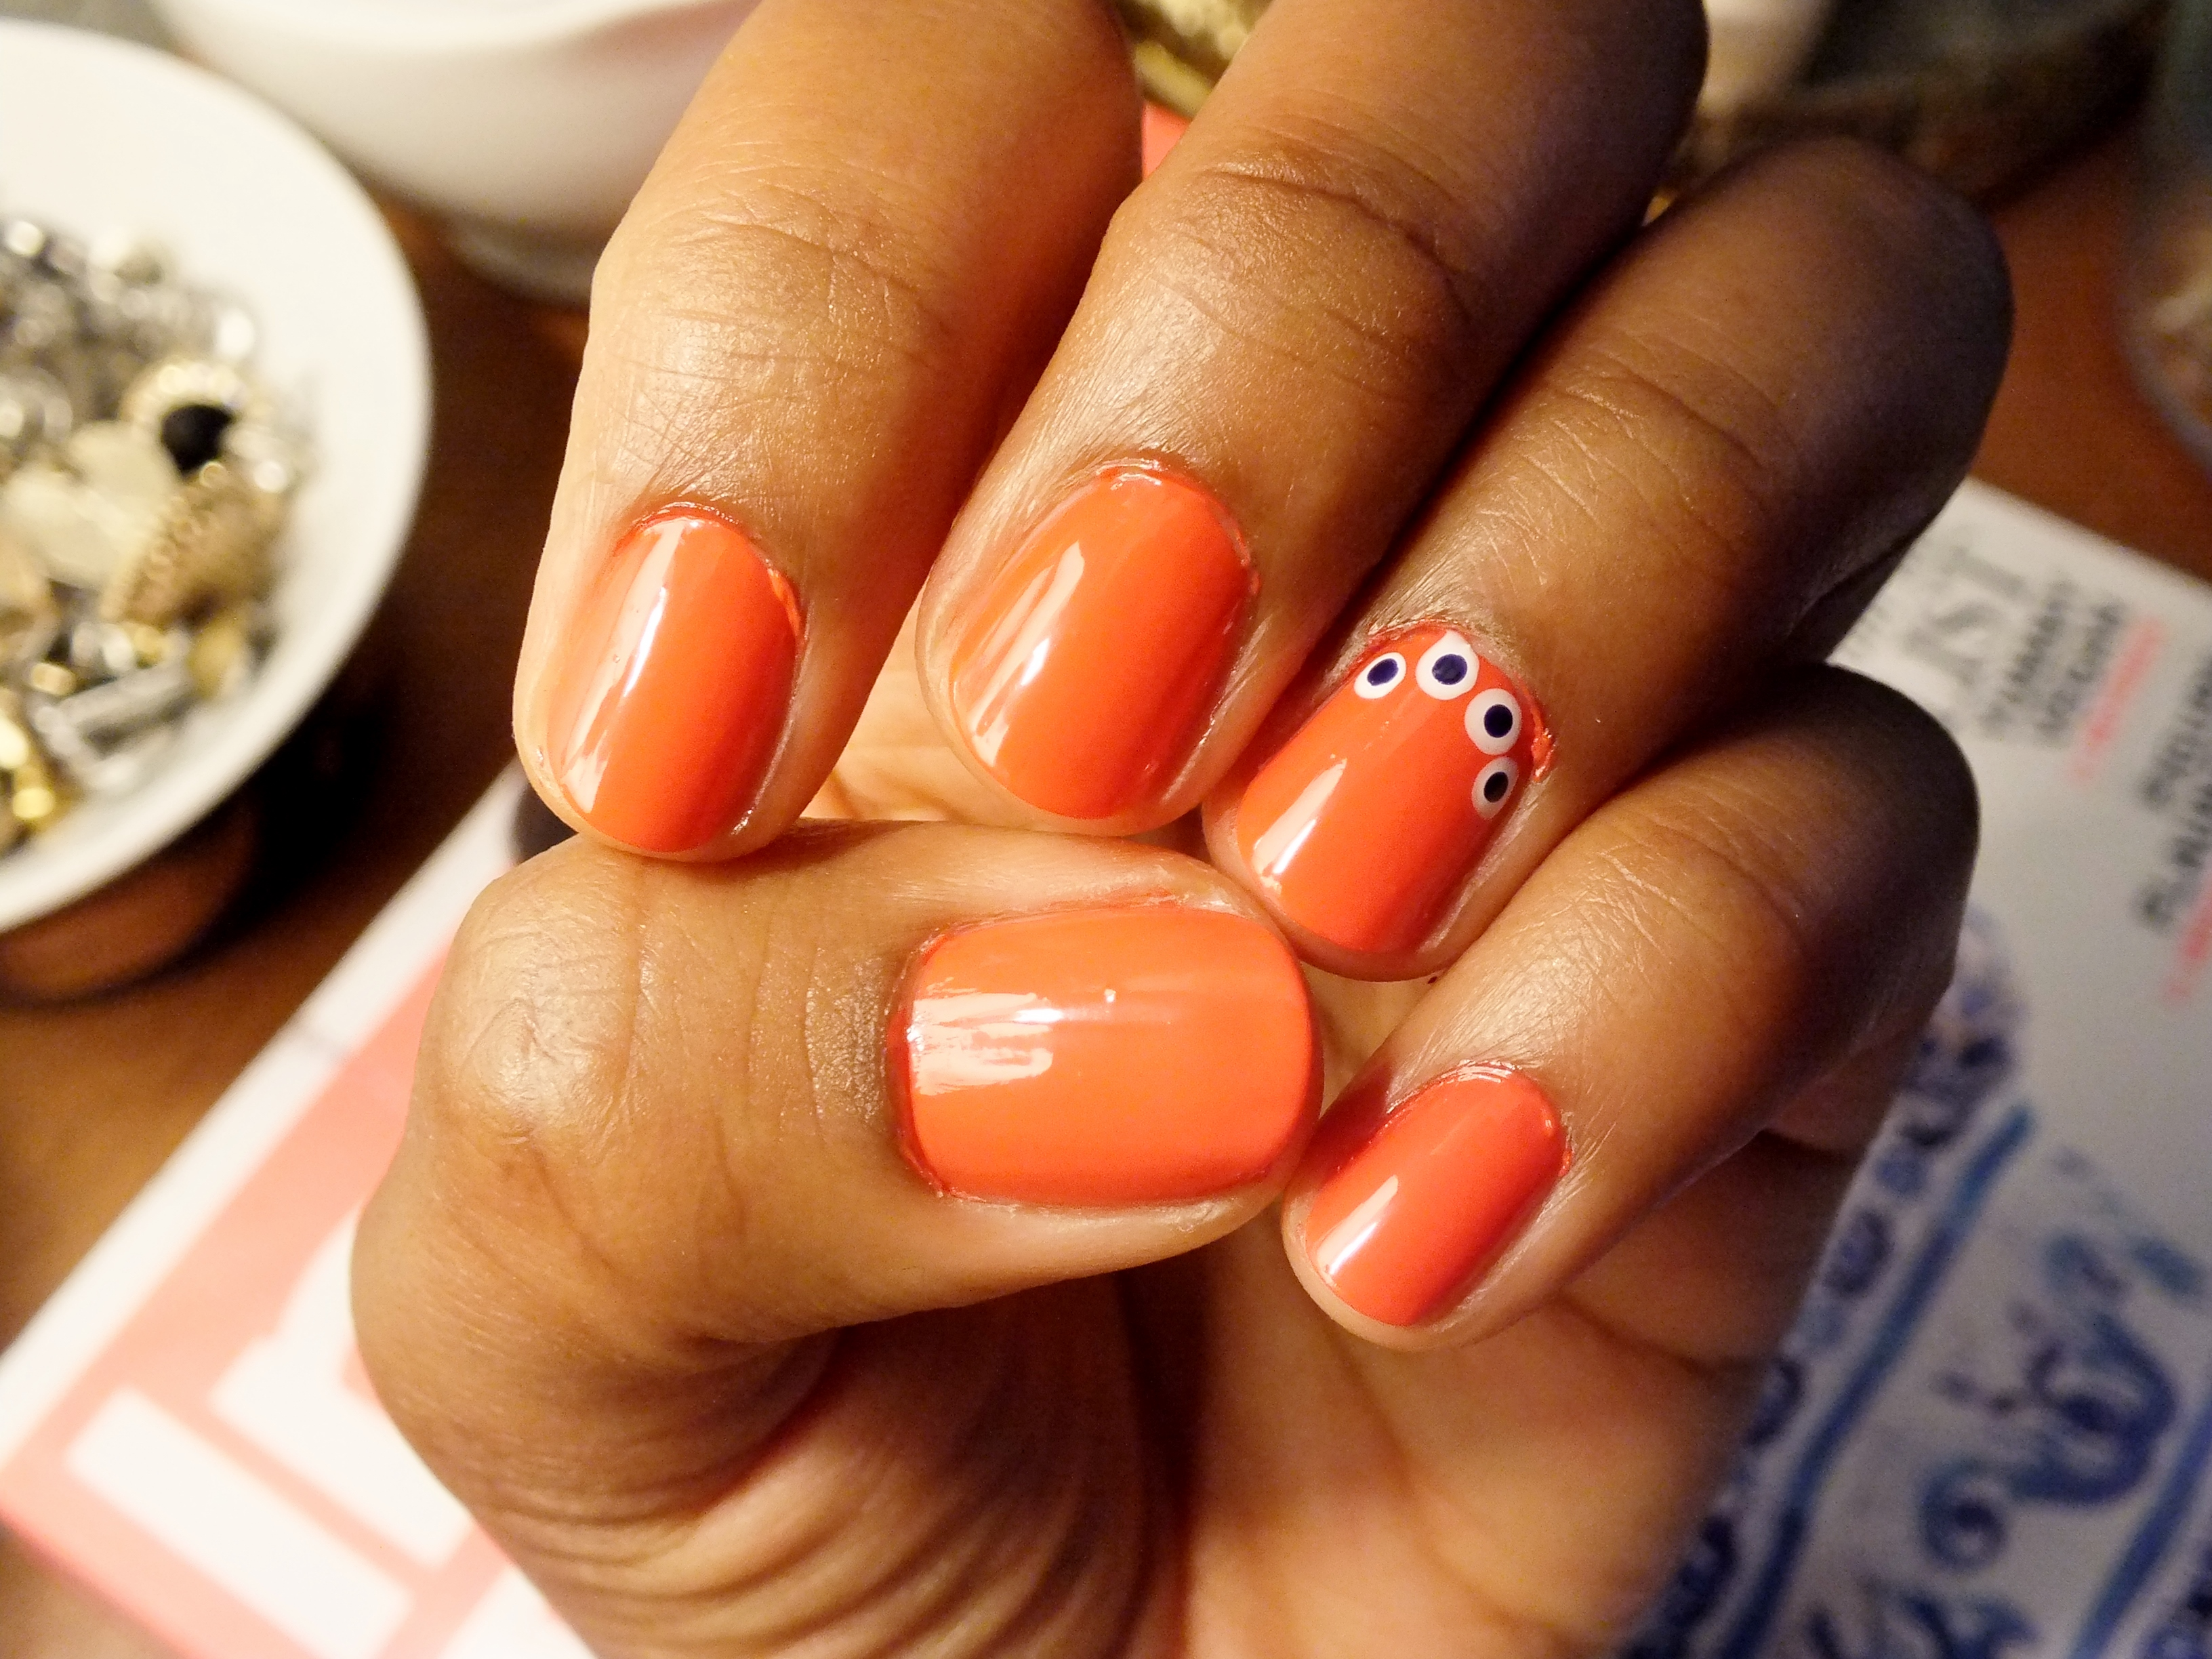 Orange with white and blue dots